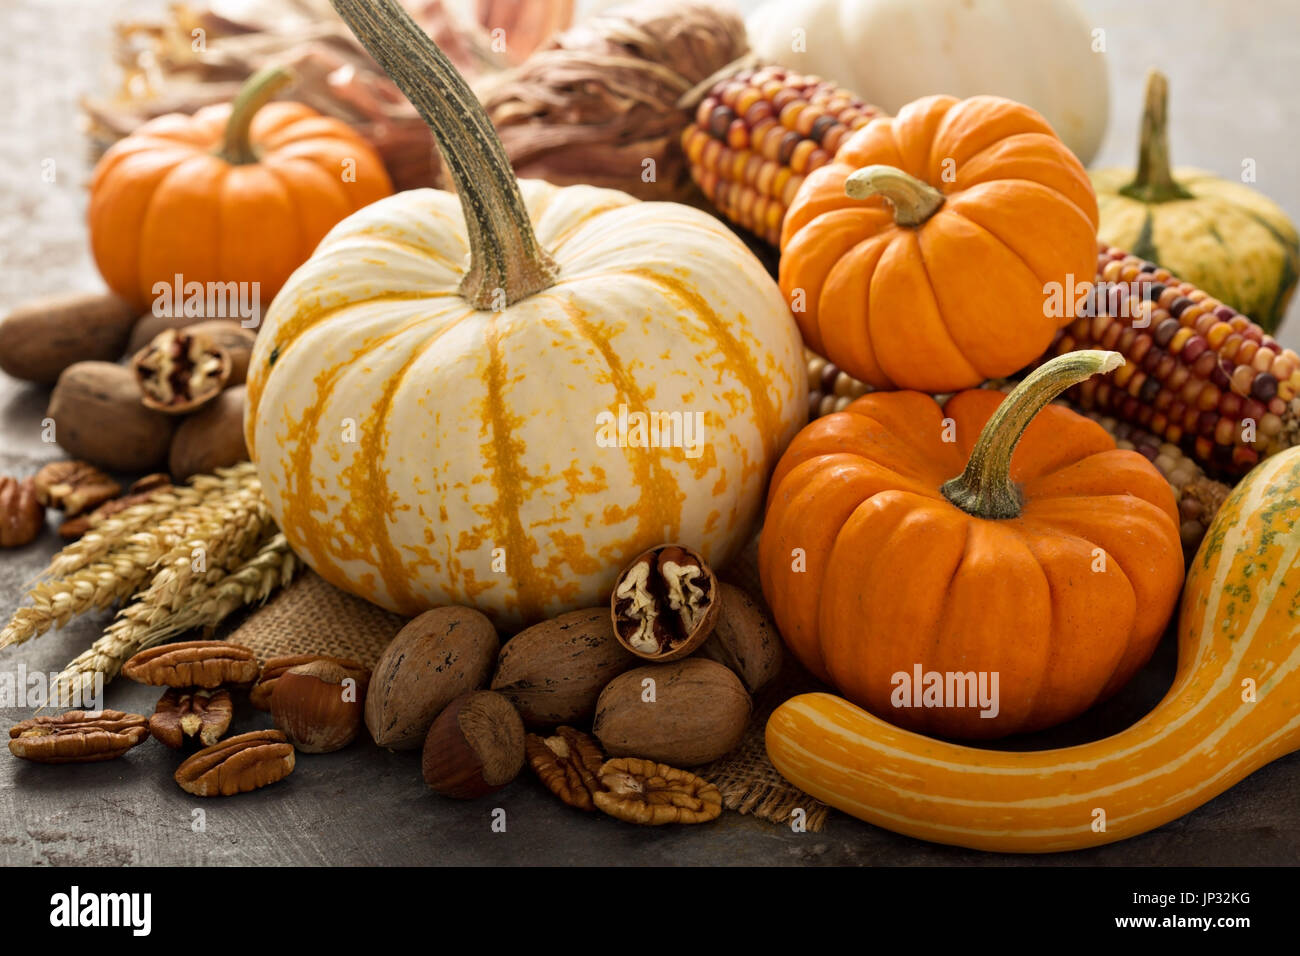 Fall still life with pumpkins, nuts, wheat and corn - Stock Image